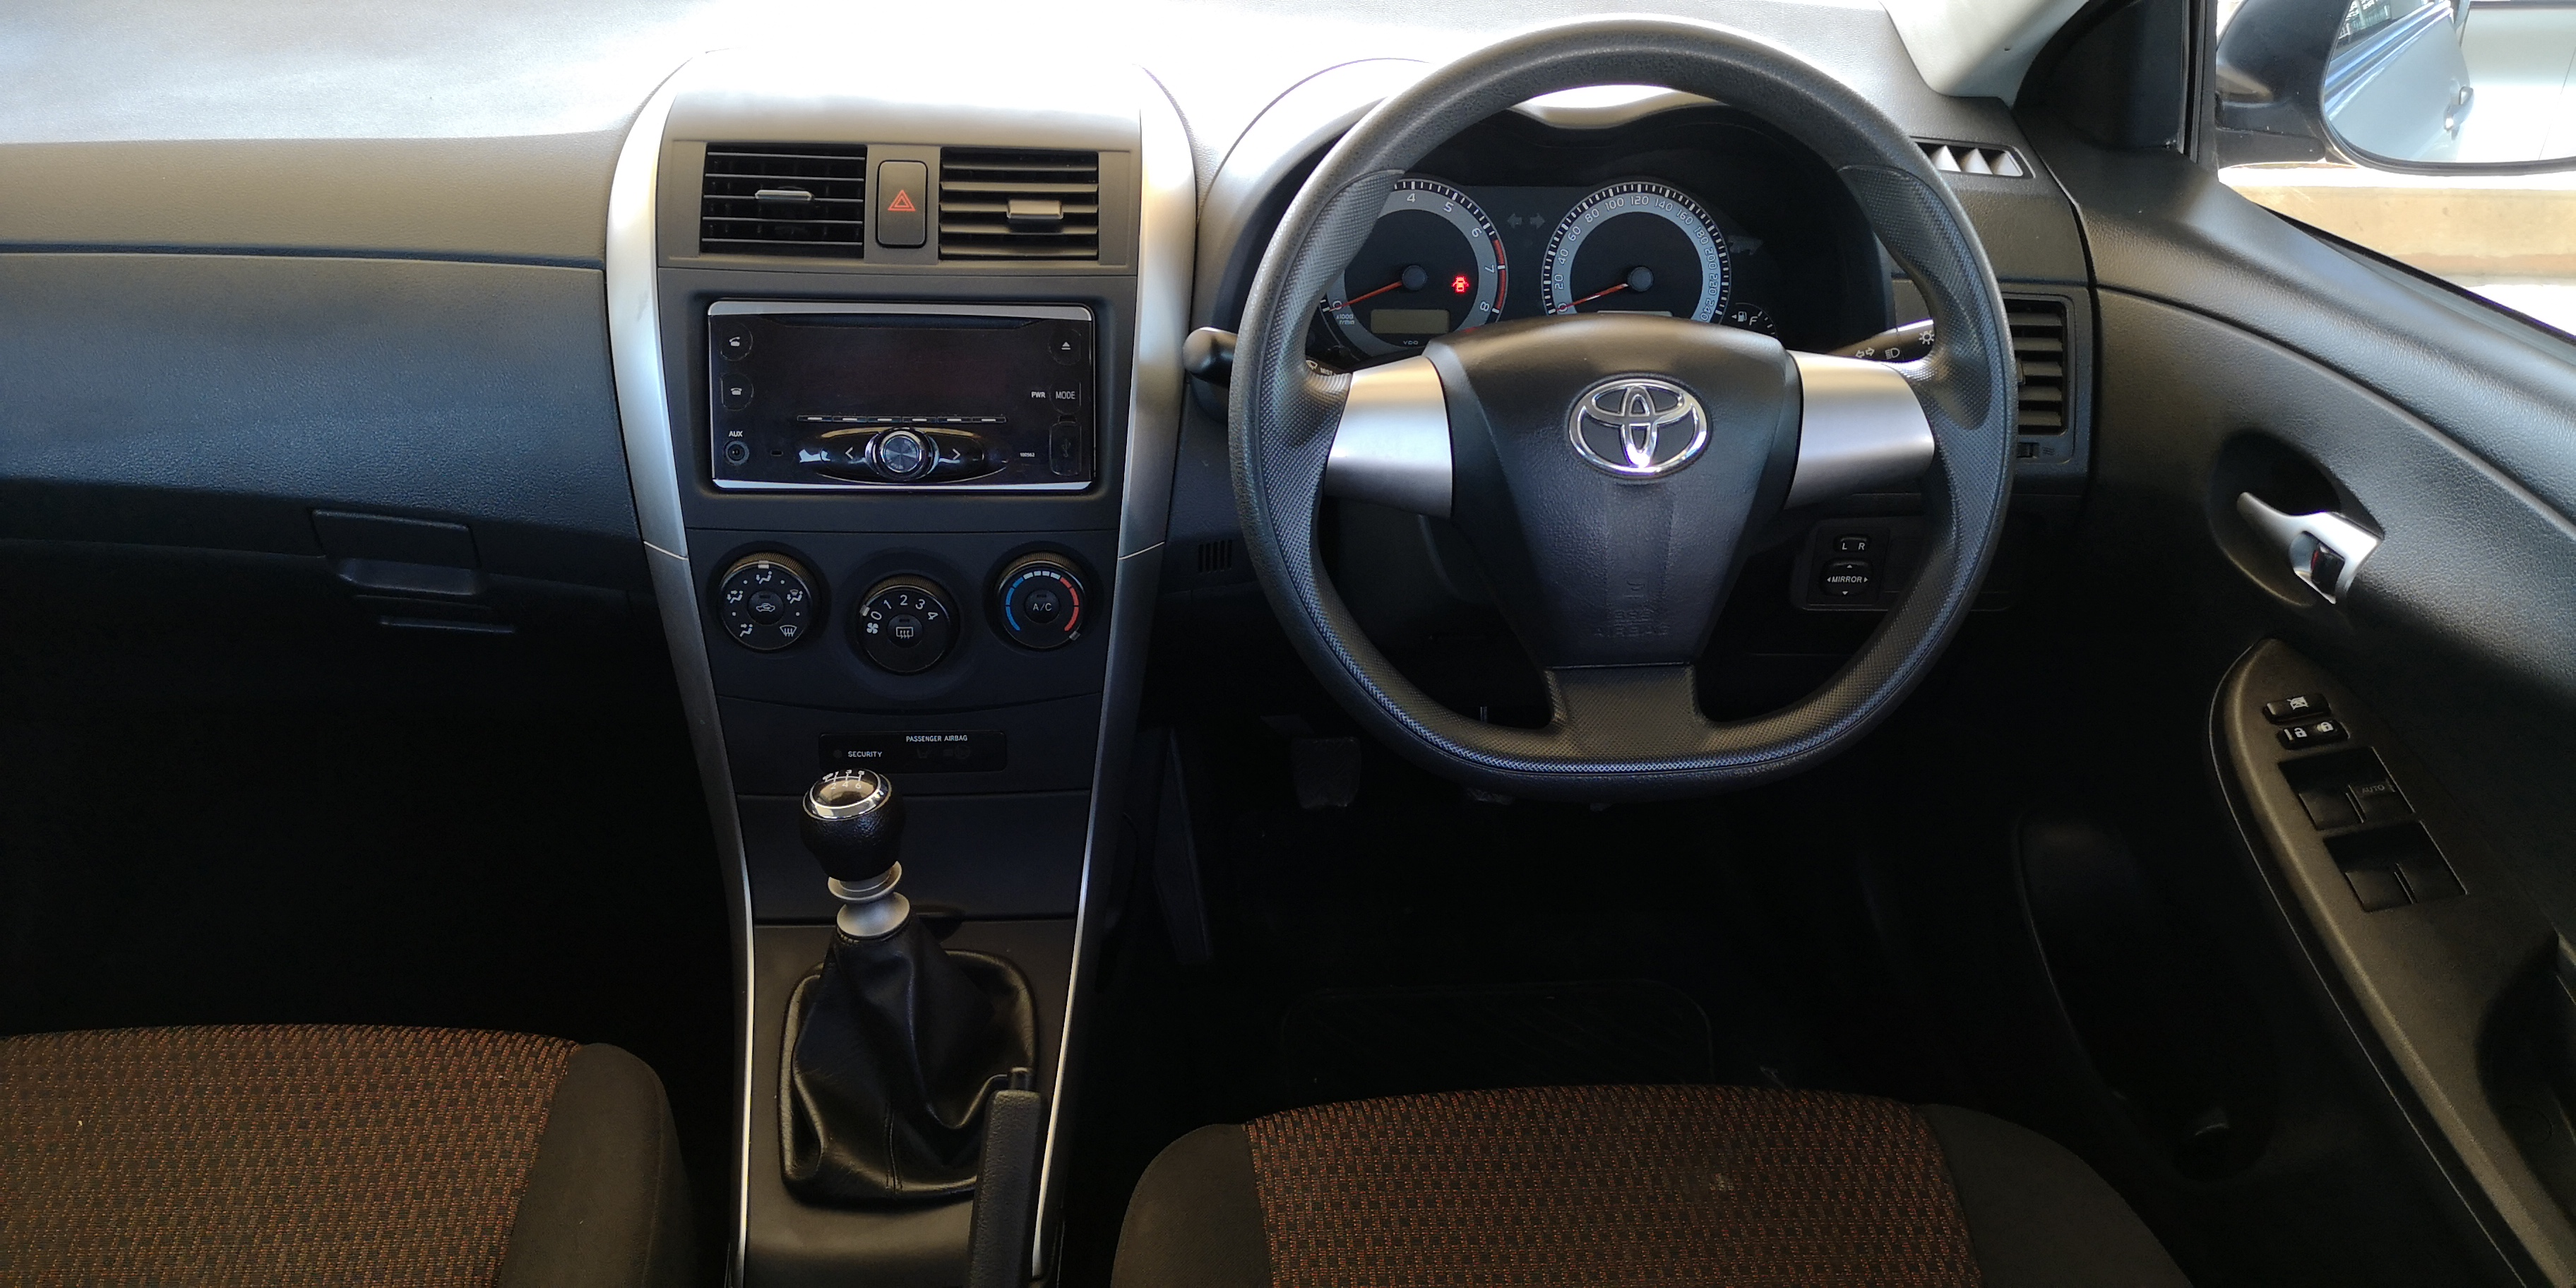 TOYOTA COROLLA QUEST 1.6 PLUS - Interior